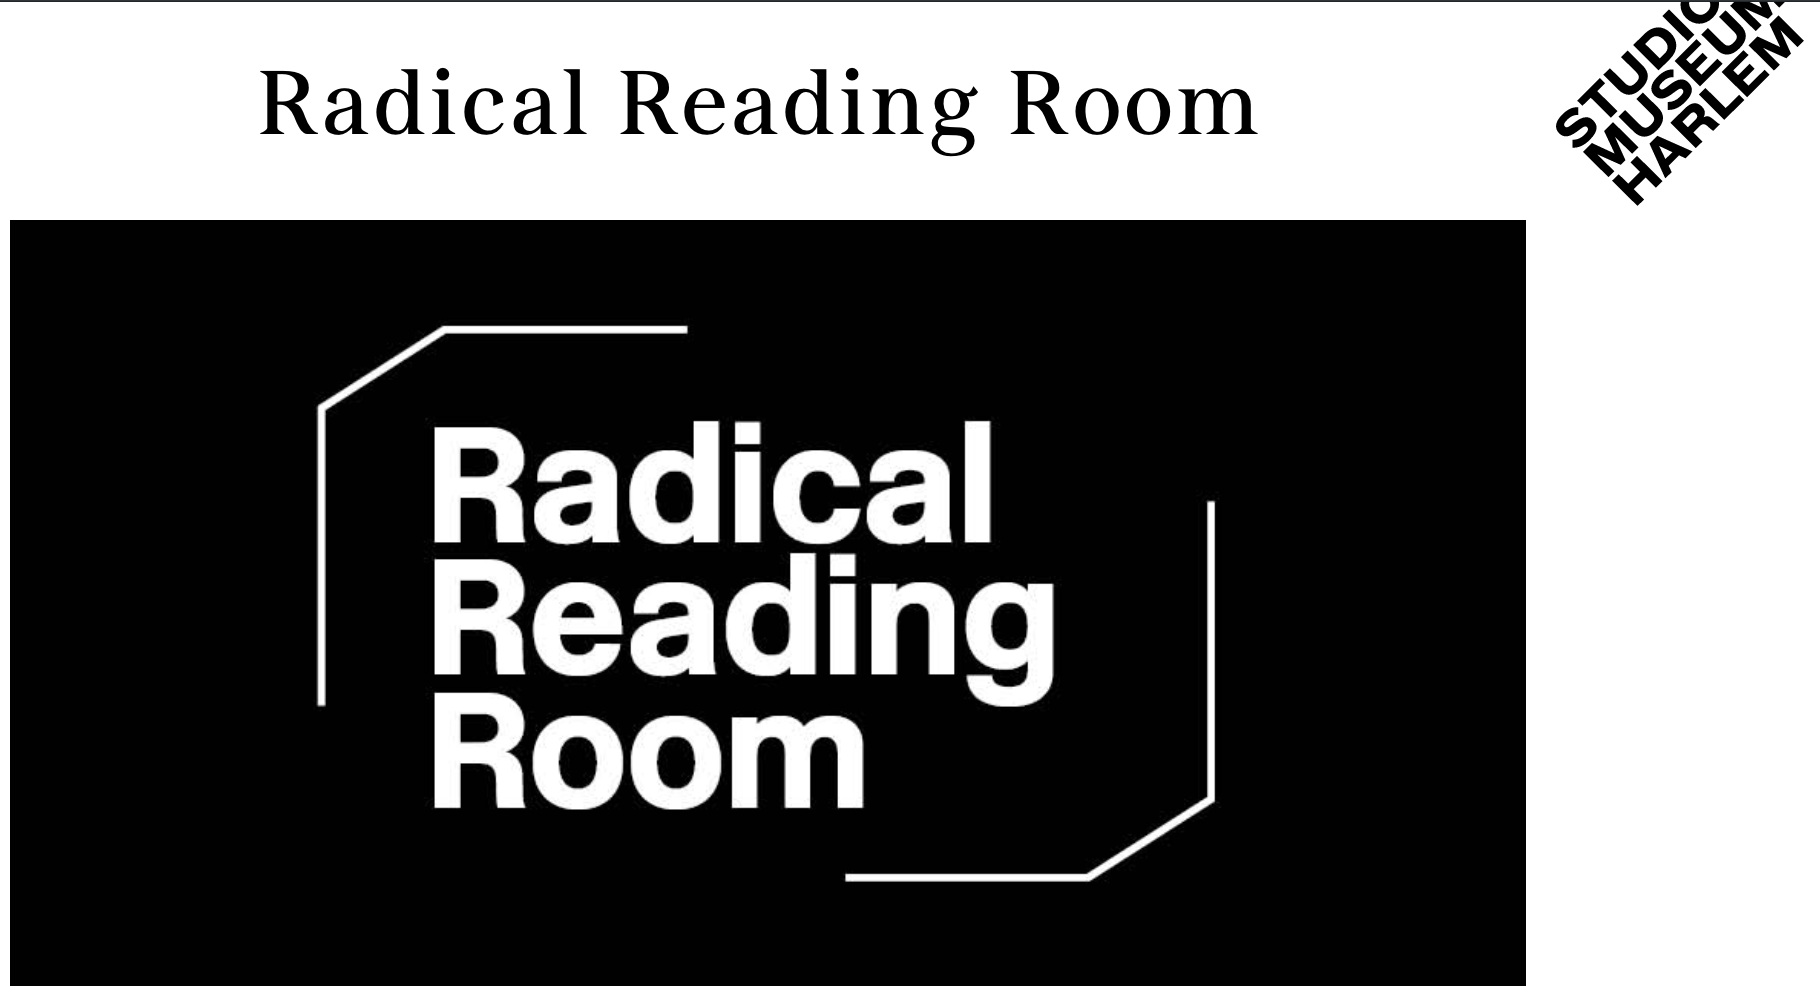 Radical Reading Room | Studio Museum Harlem